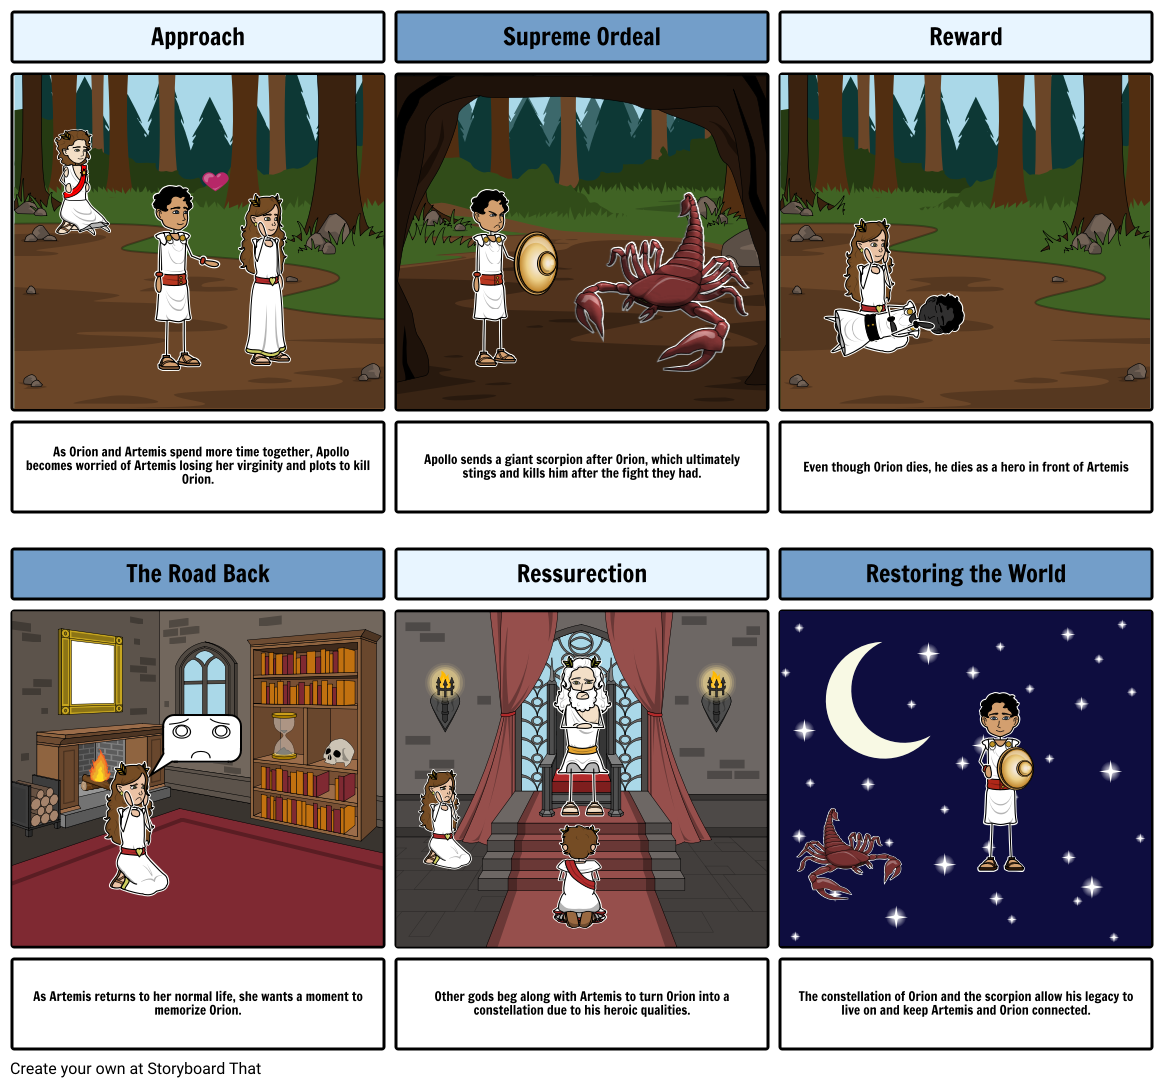 Mythical storyboard about Artemis